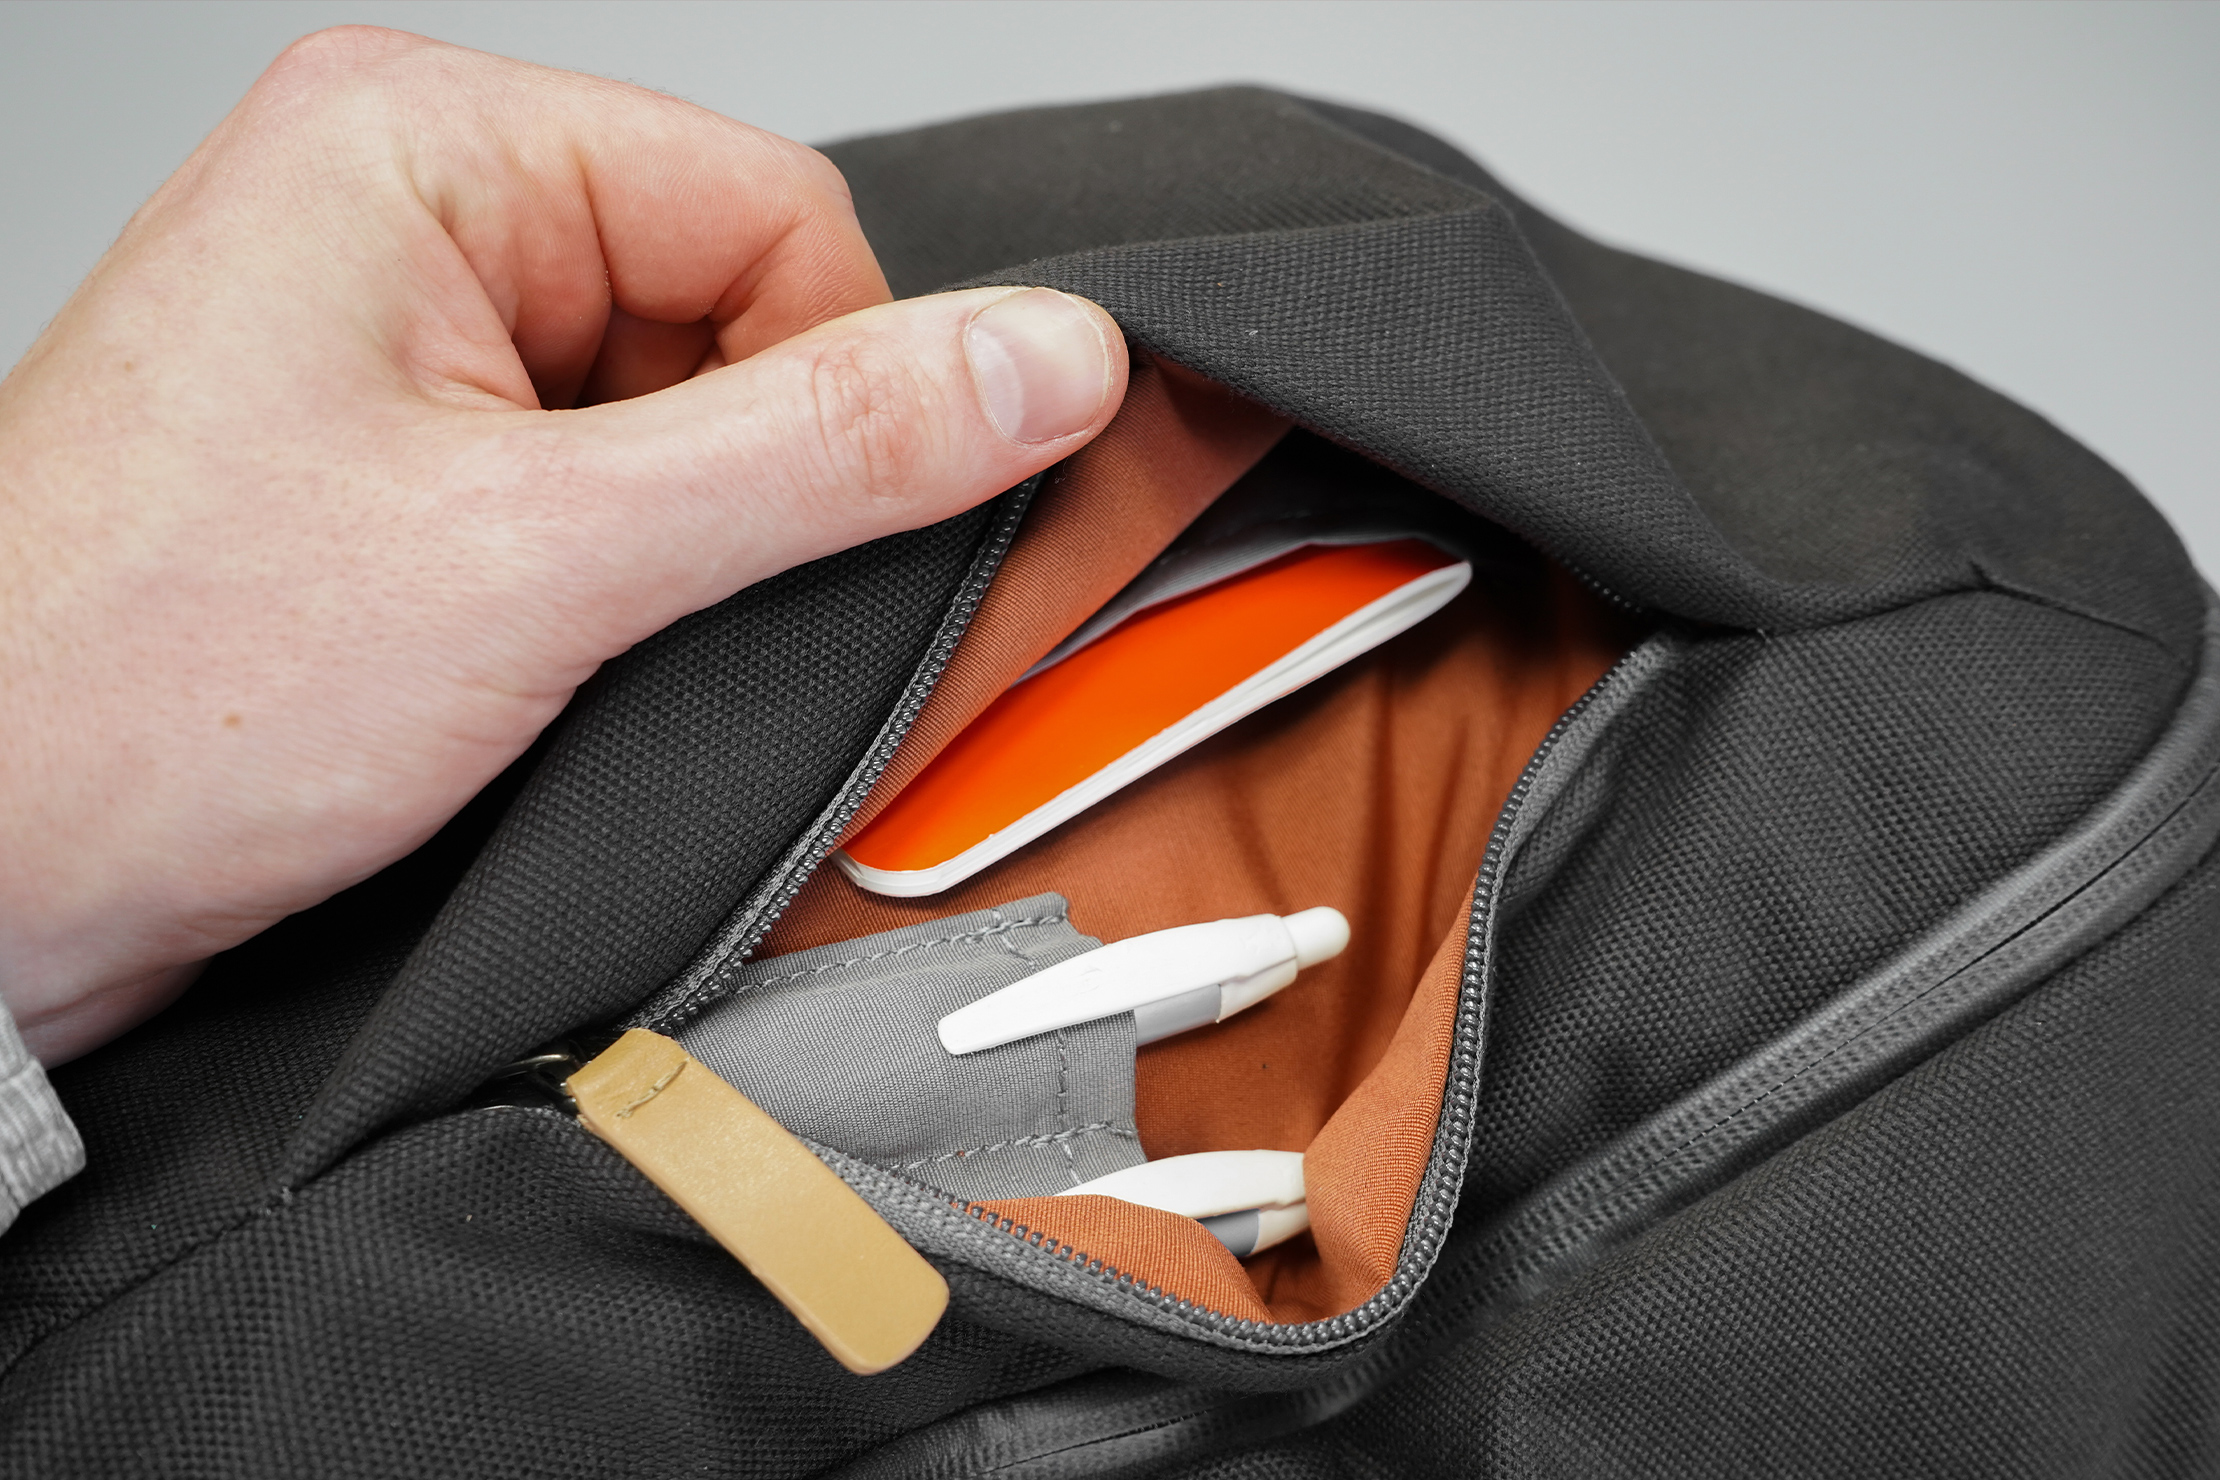 Bellroy Transit Workpack | The front pocket is much bigger inside than it appears